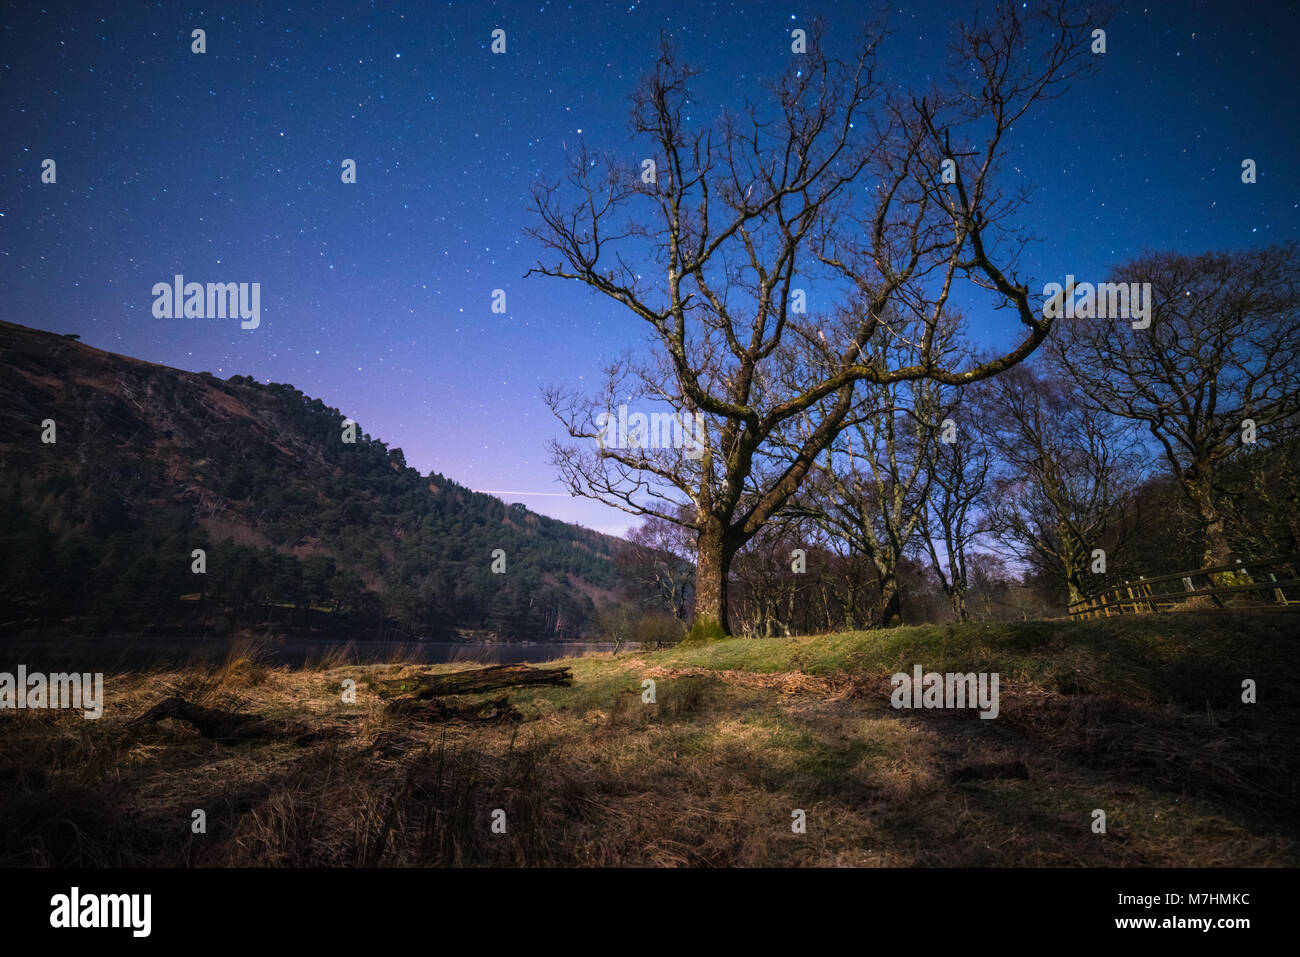 Tree at the night in mountains - Stock Image